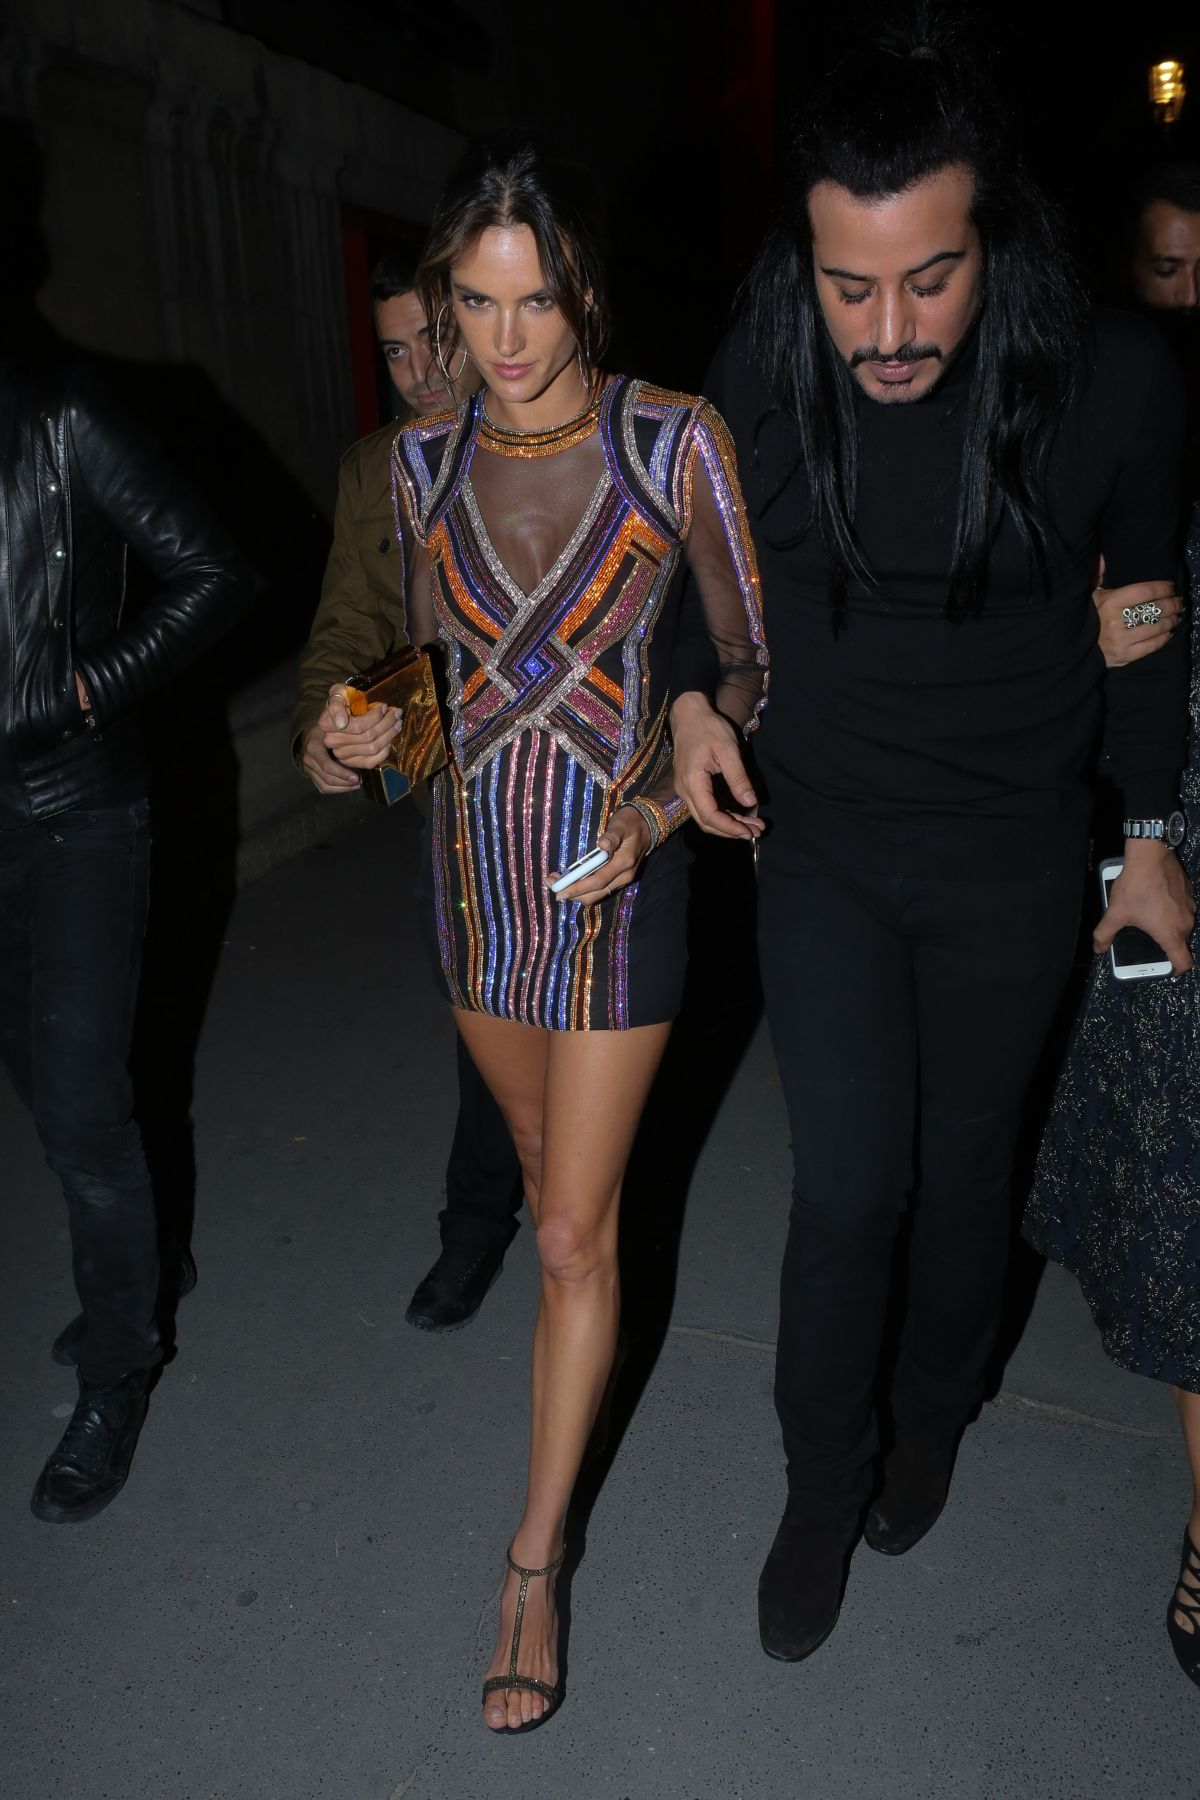 ALESSANDRA AMBROSIO at Balmain Aftershow Party in Paris 09/29/2016